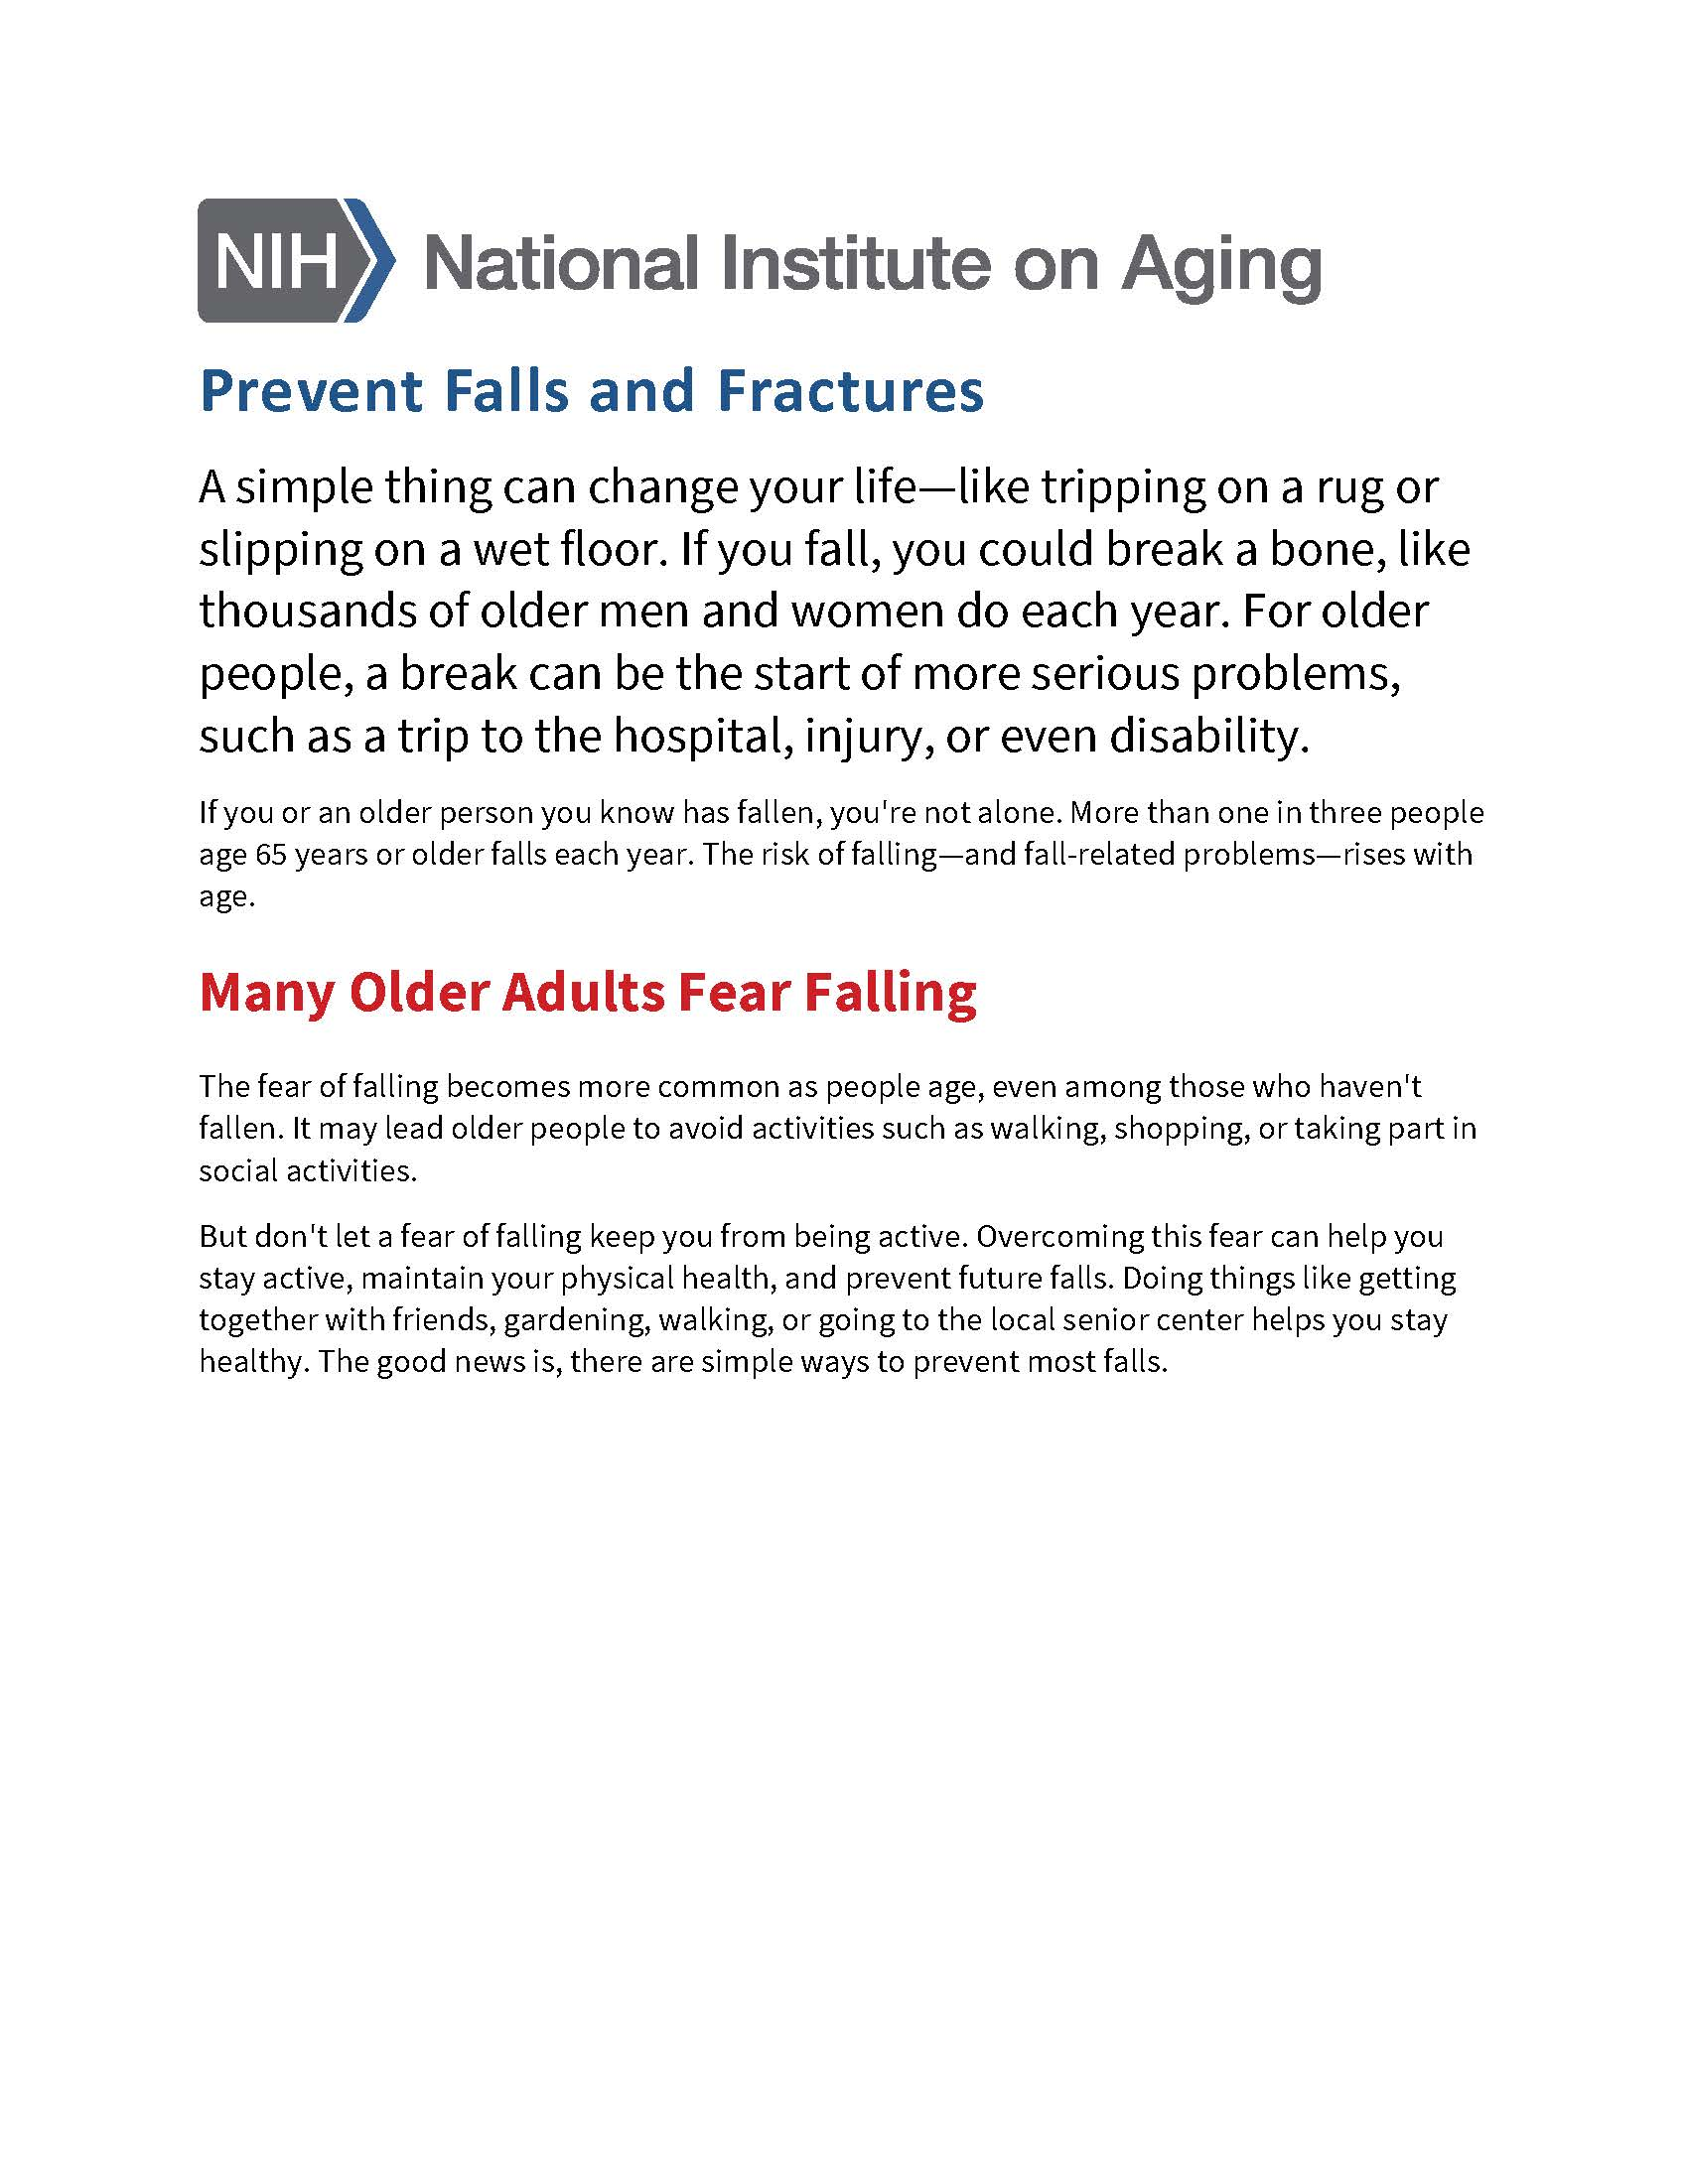 Pages from 57. Prevent Falls and Fractures